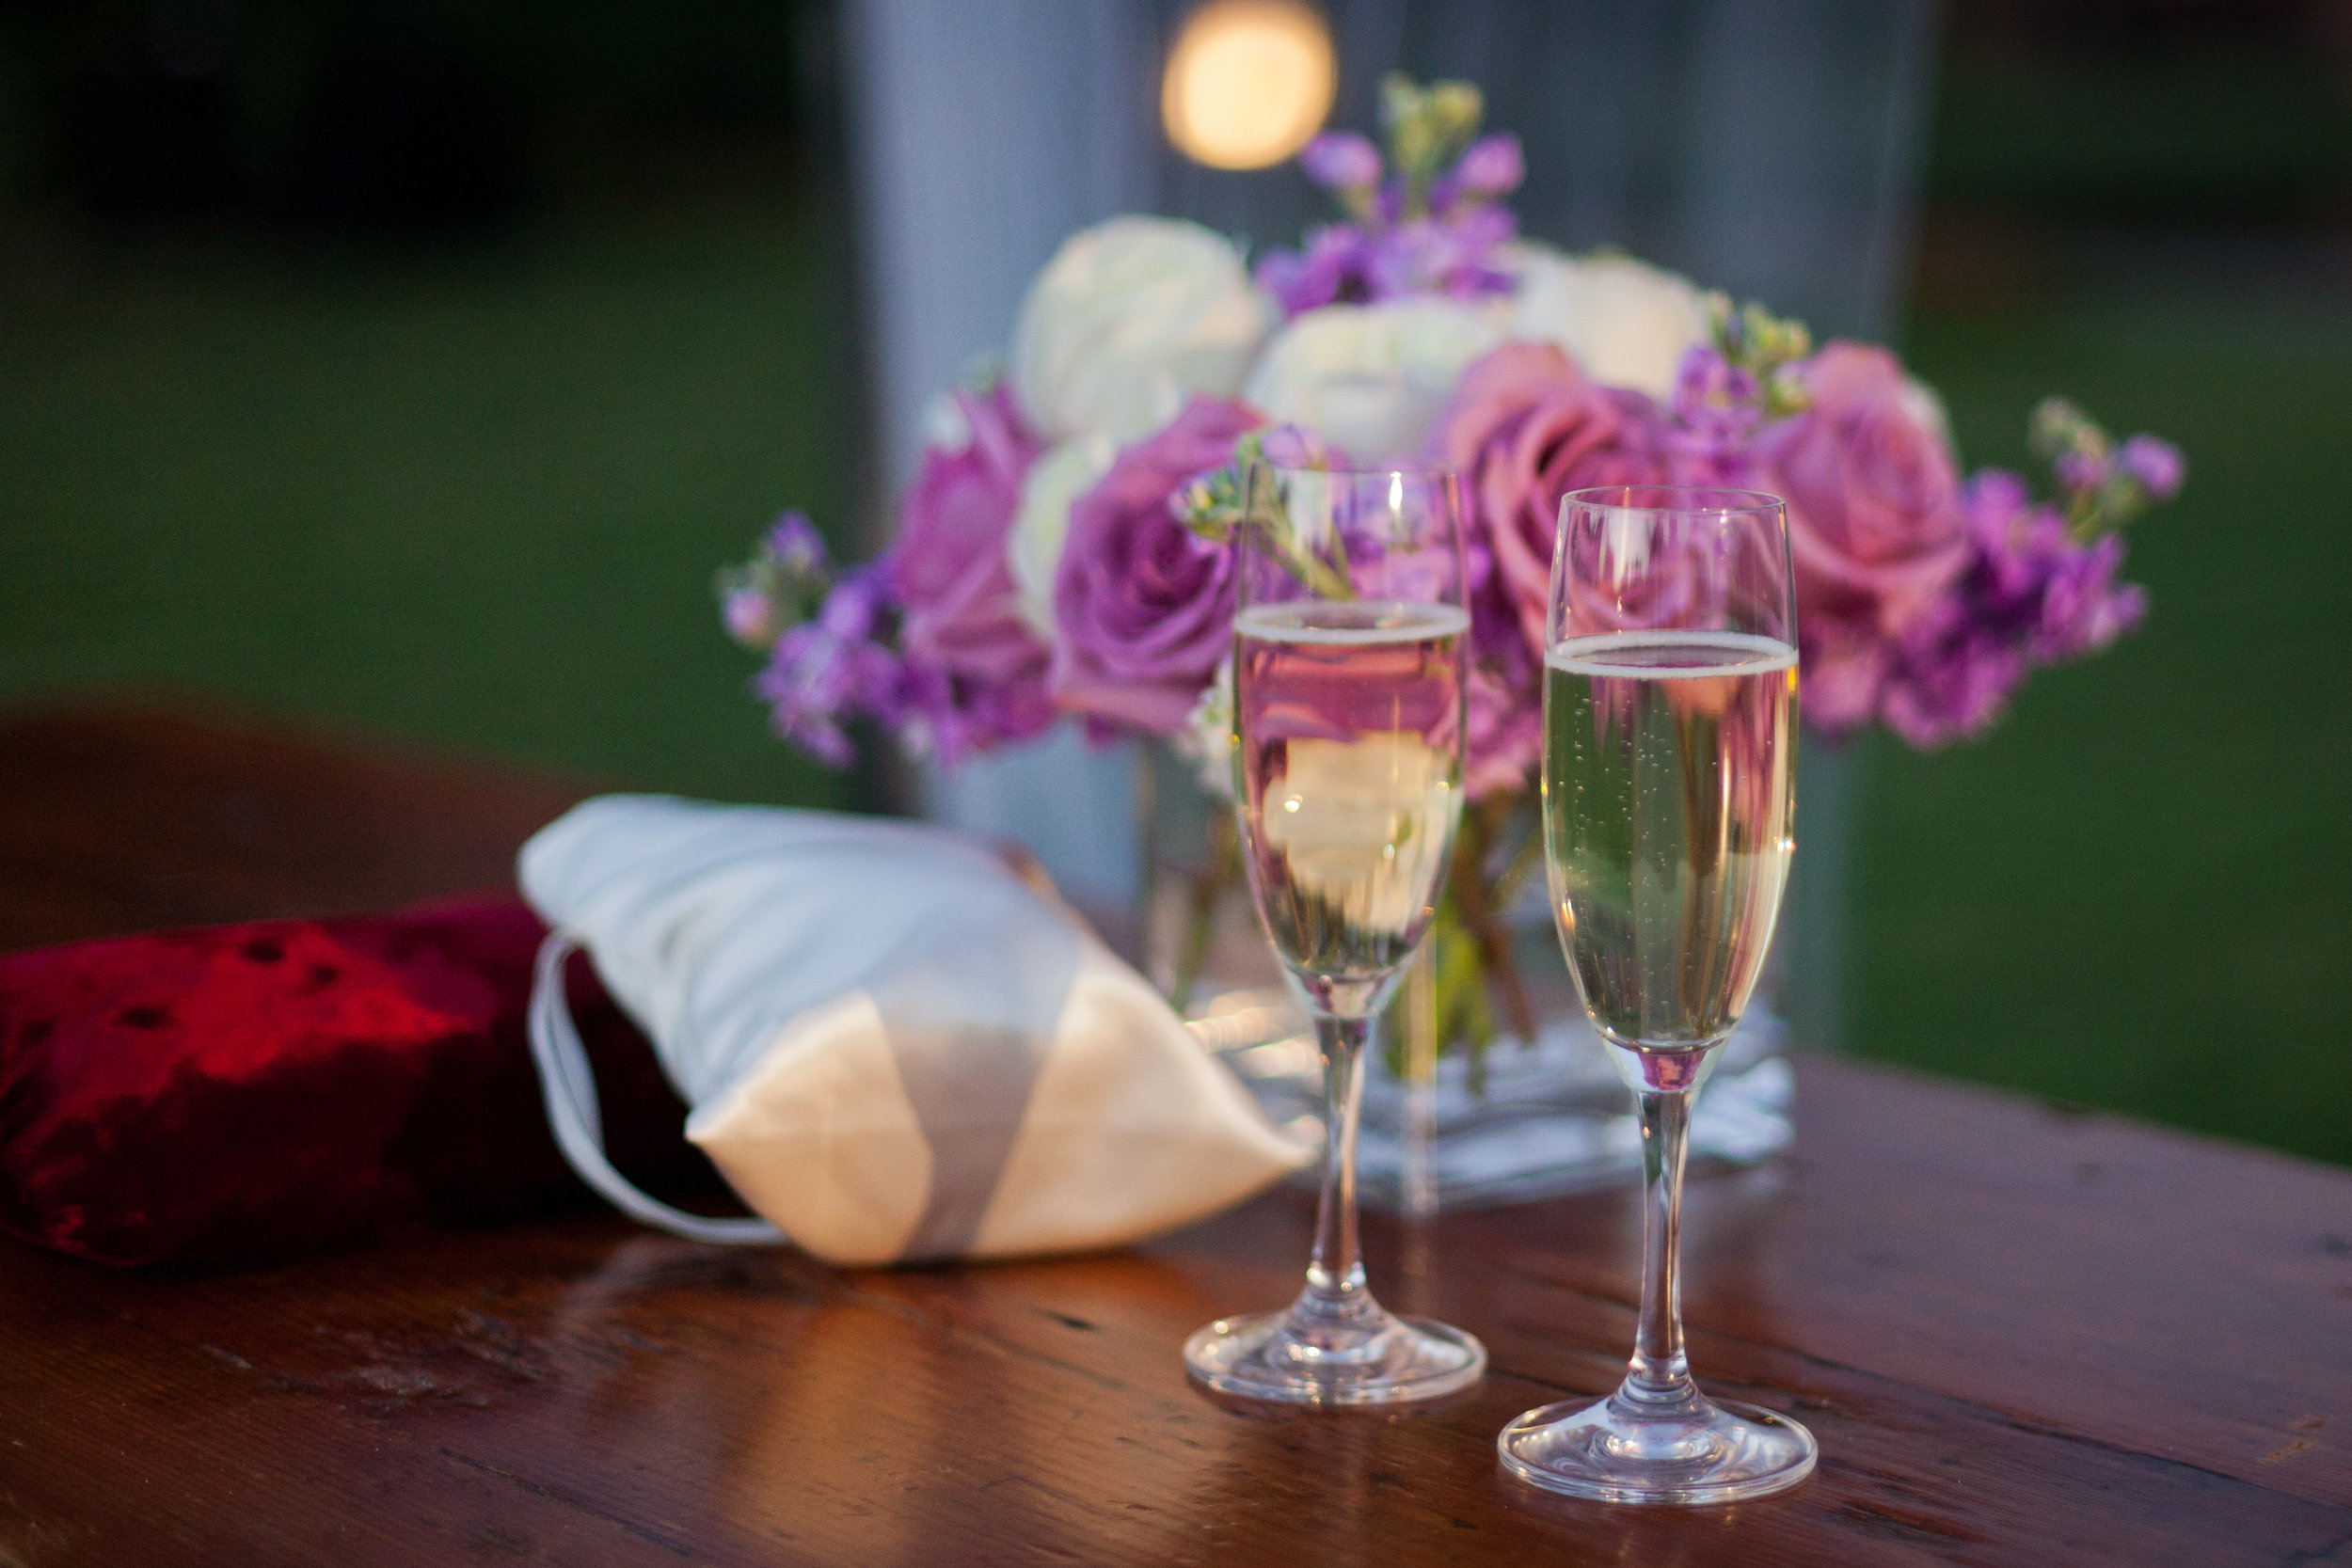 12 champagne to toast with champagne glasses purple and white rose centerpieces Sergio Photography Life Design Events.JPG